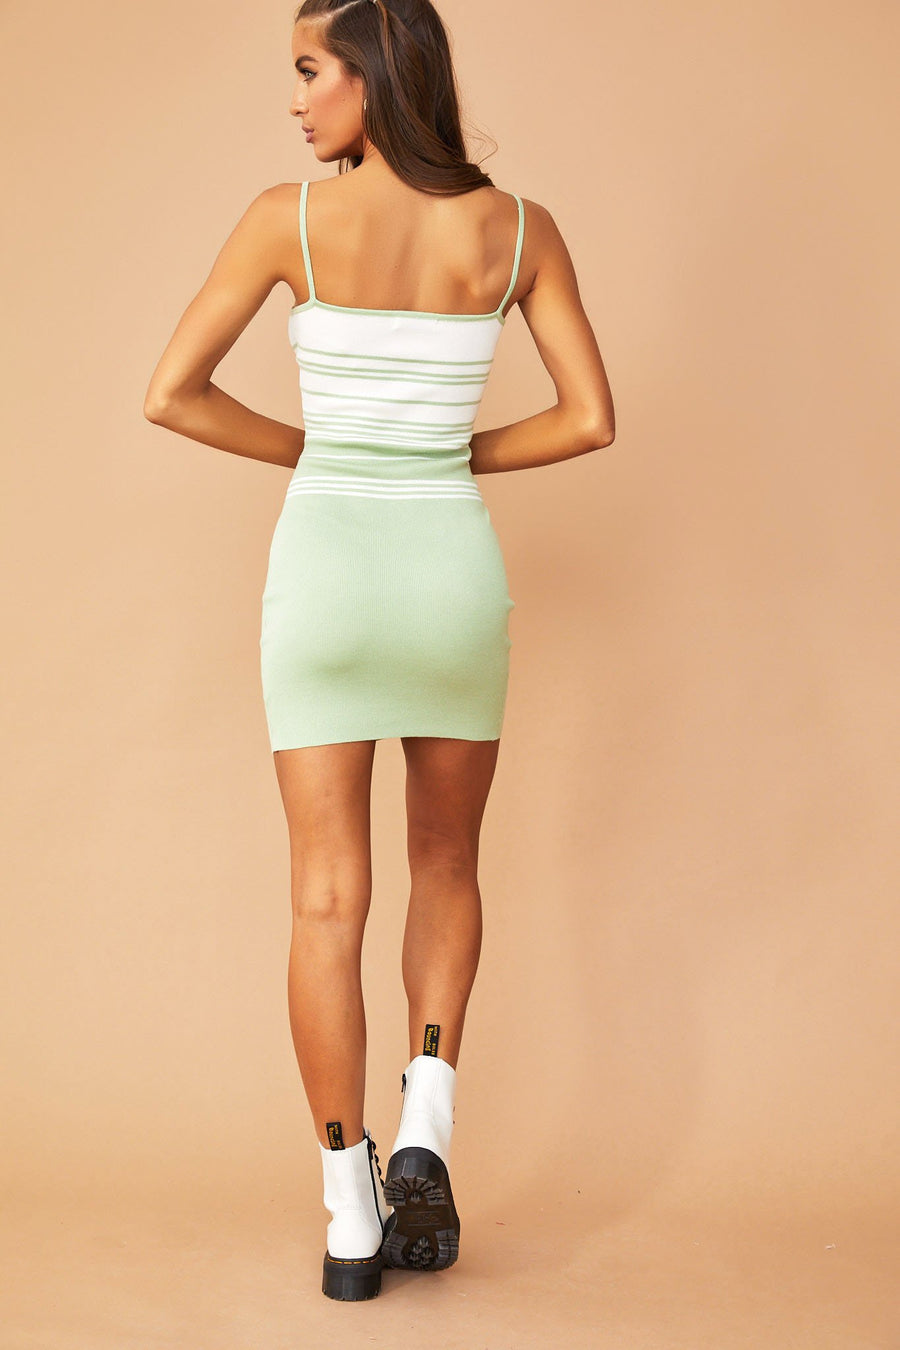 Monique Strap Dress // Lime | Sage and Paige.?id=25780540440745